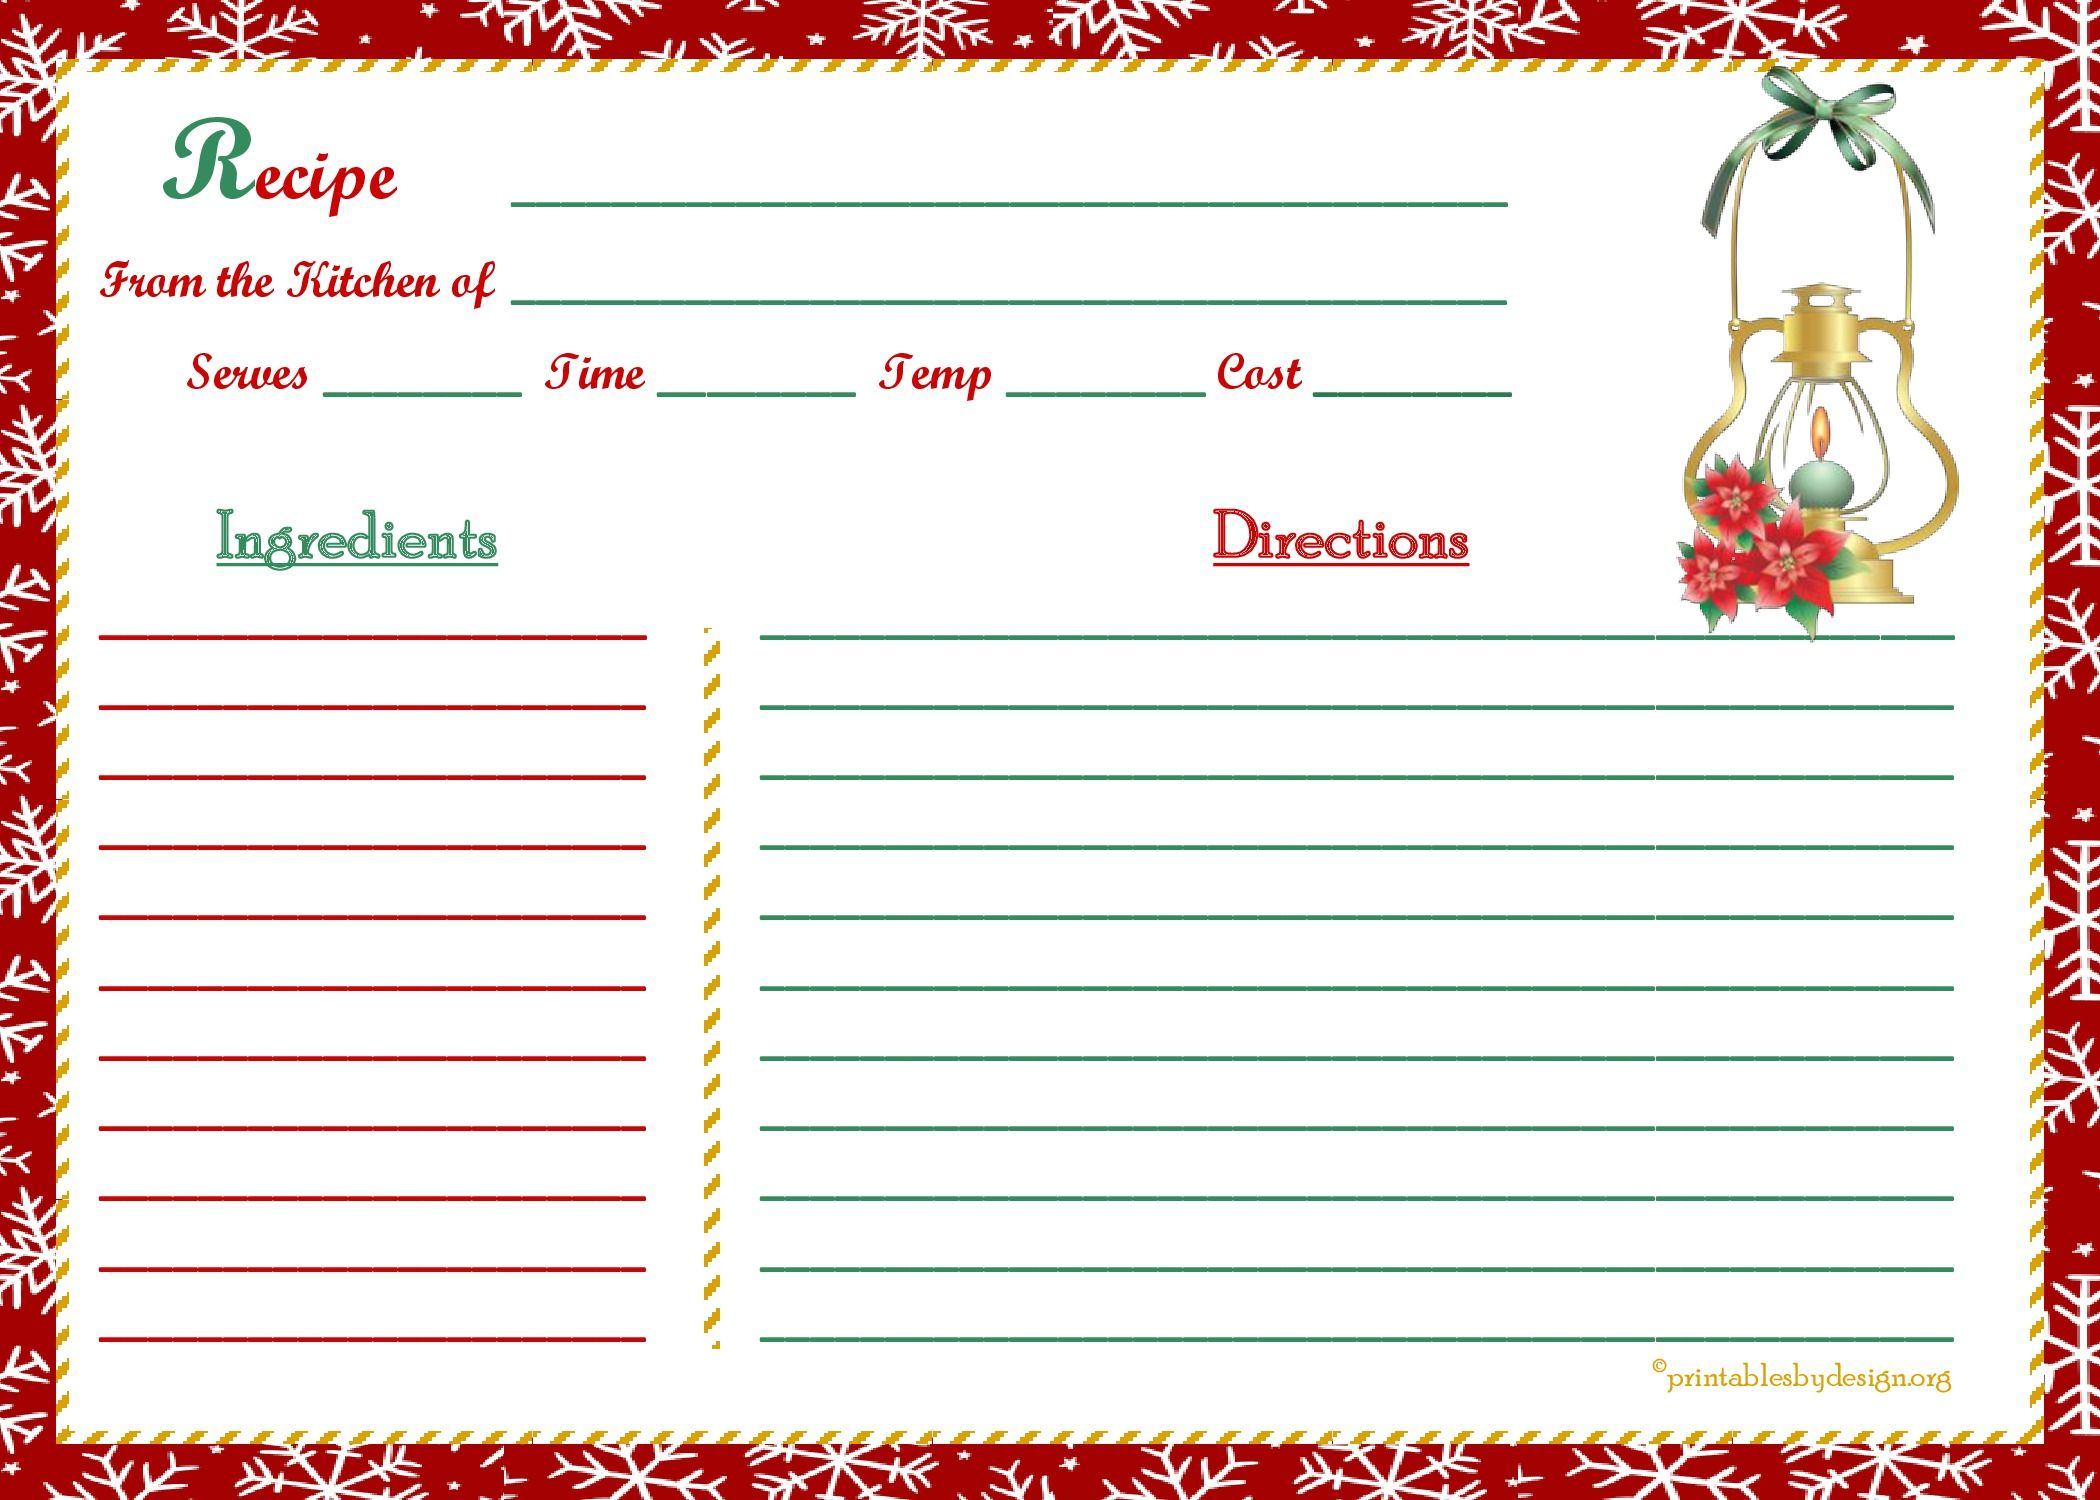 snowflake christmas background recipe card 5x7